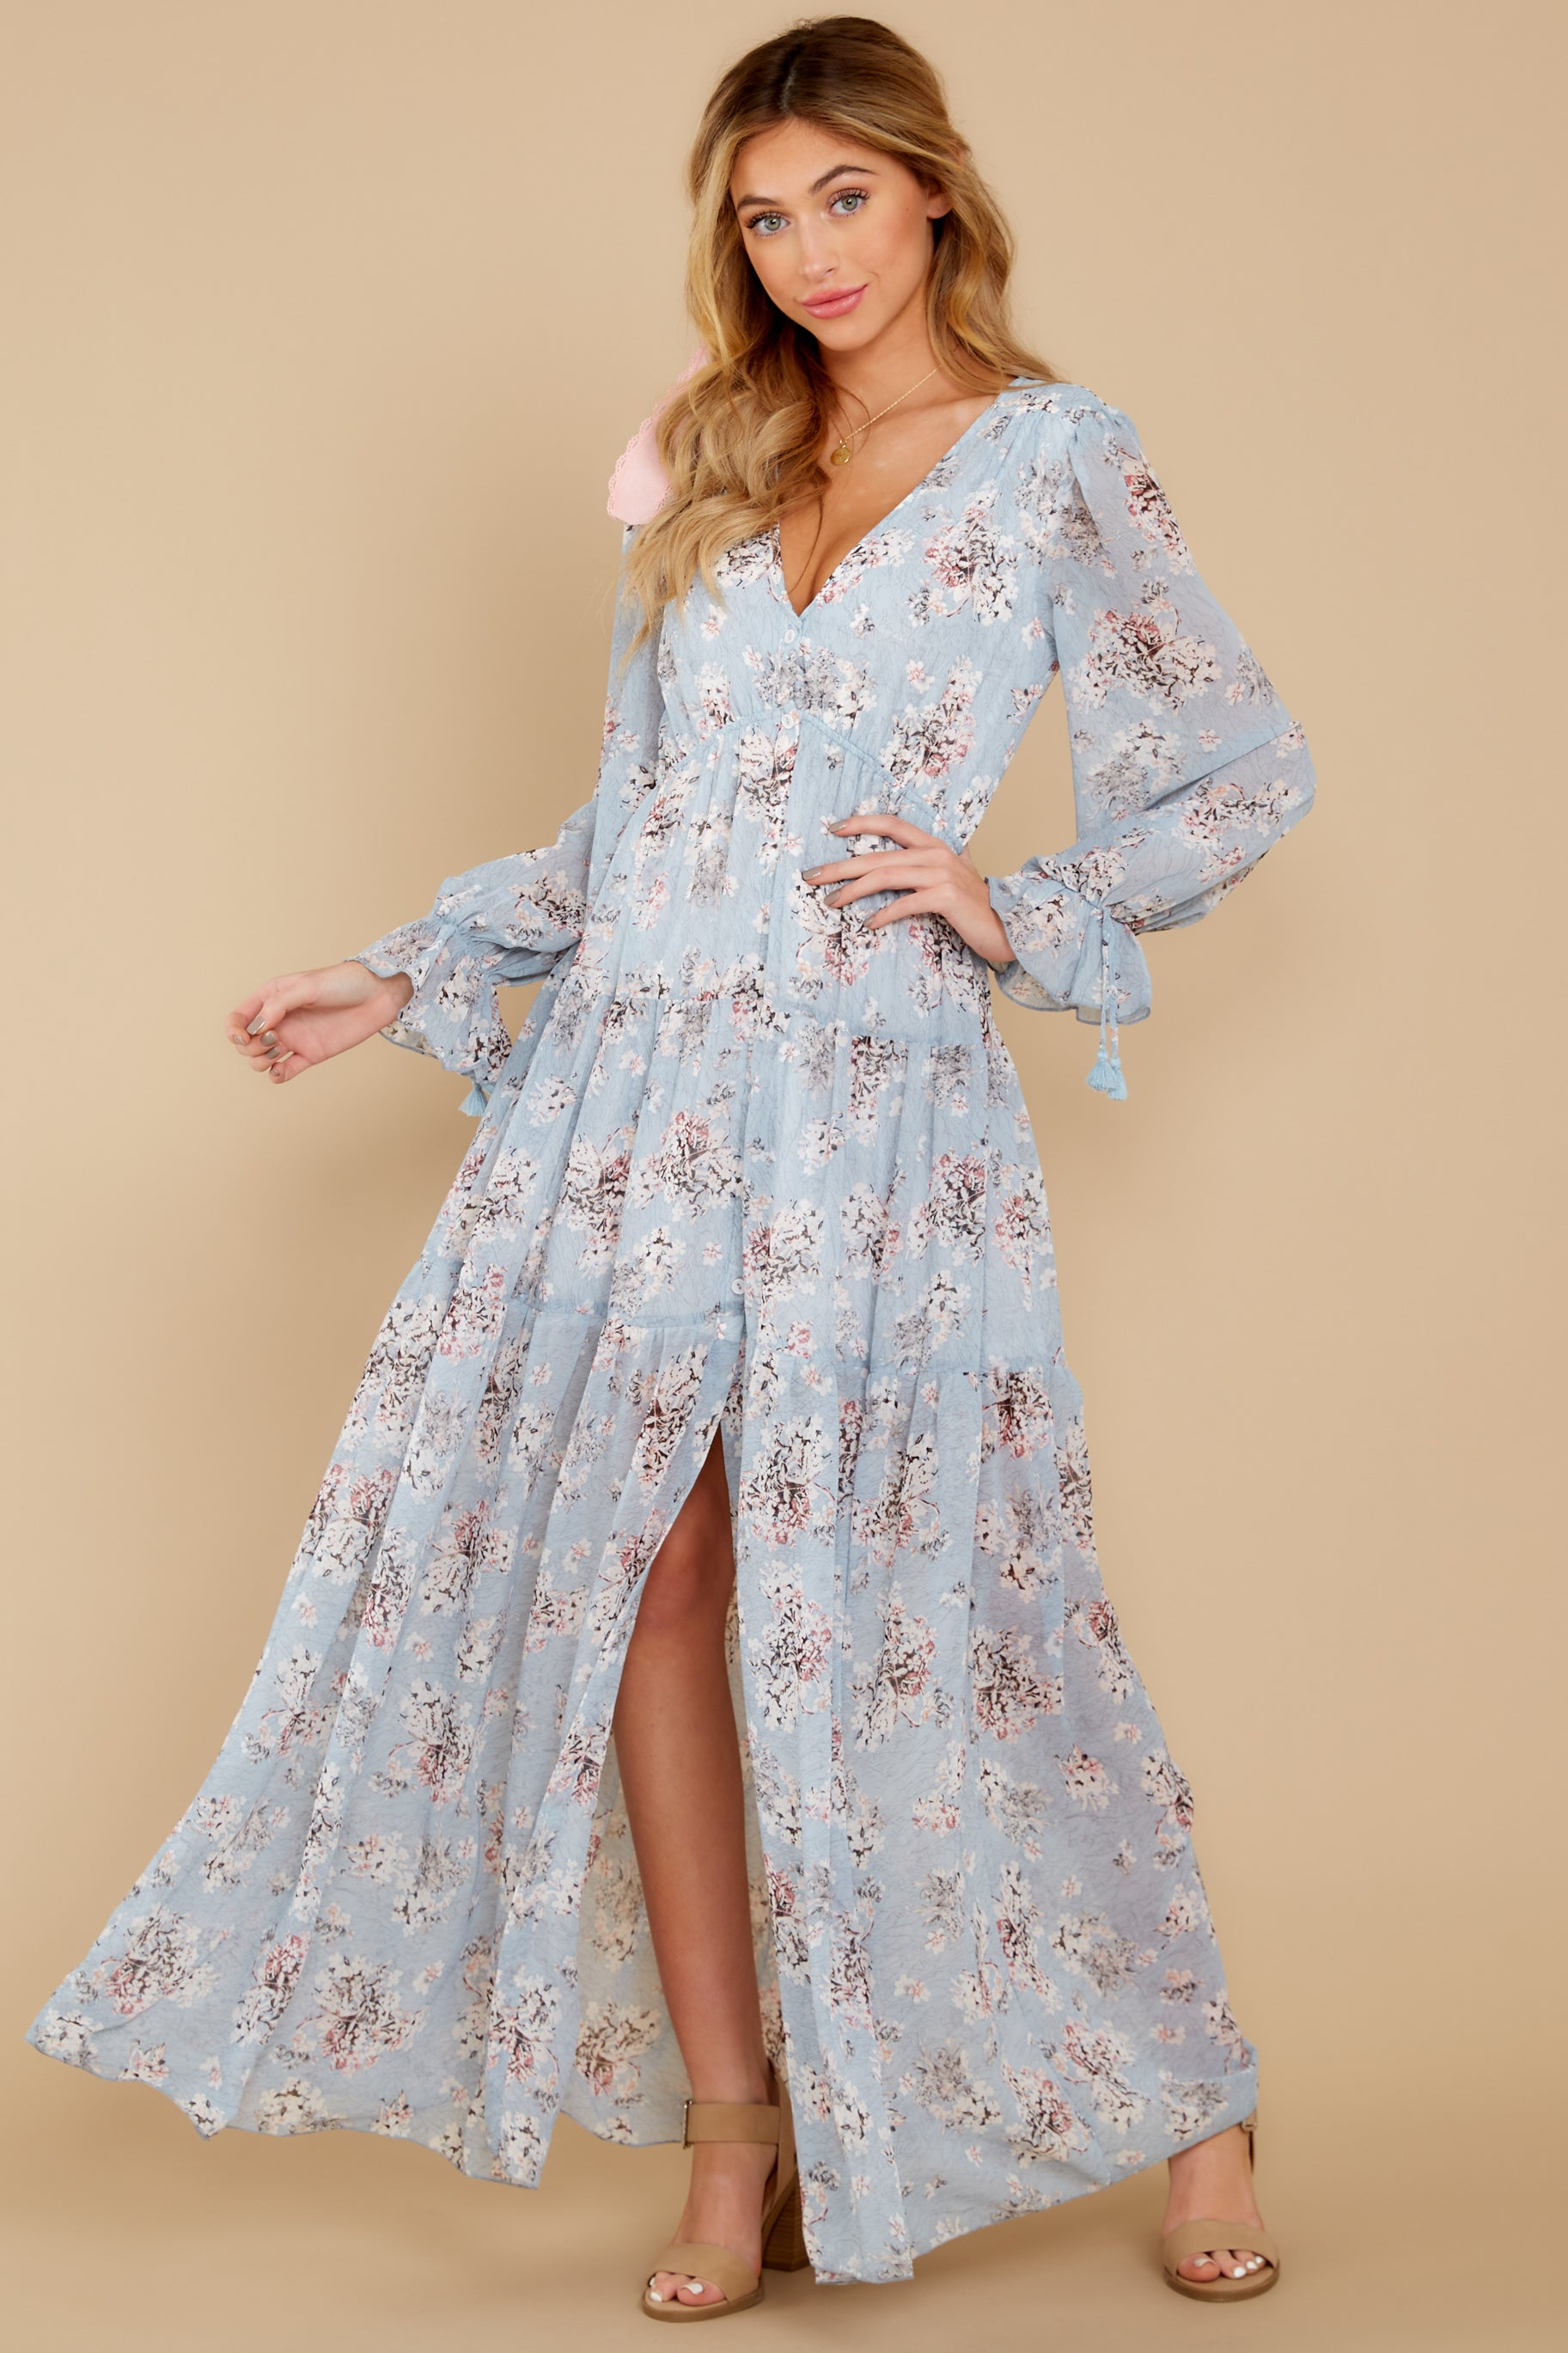 4 Love In Bloom Light Blue Floral Print Maxi Dress at reddress.com